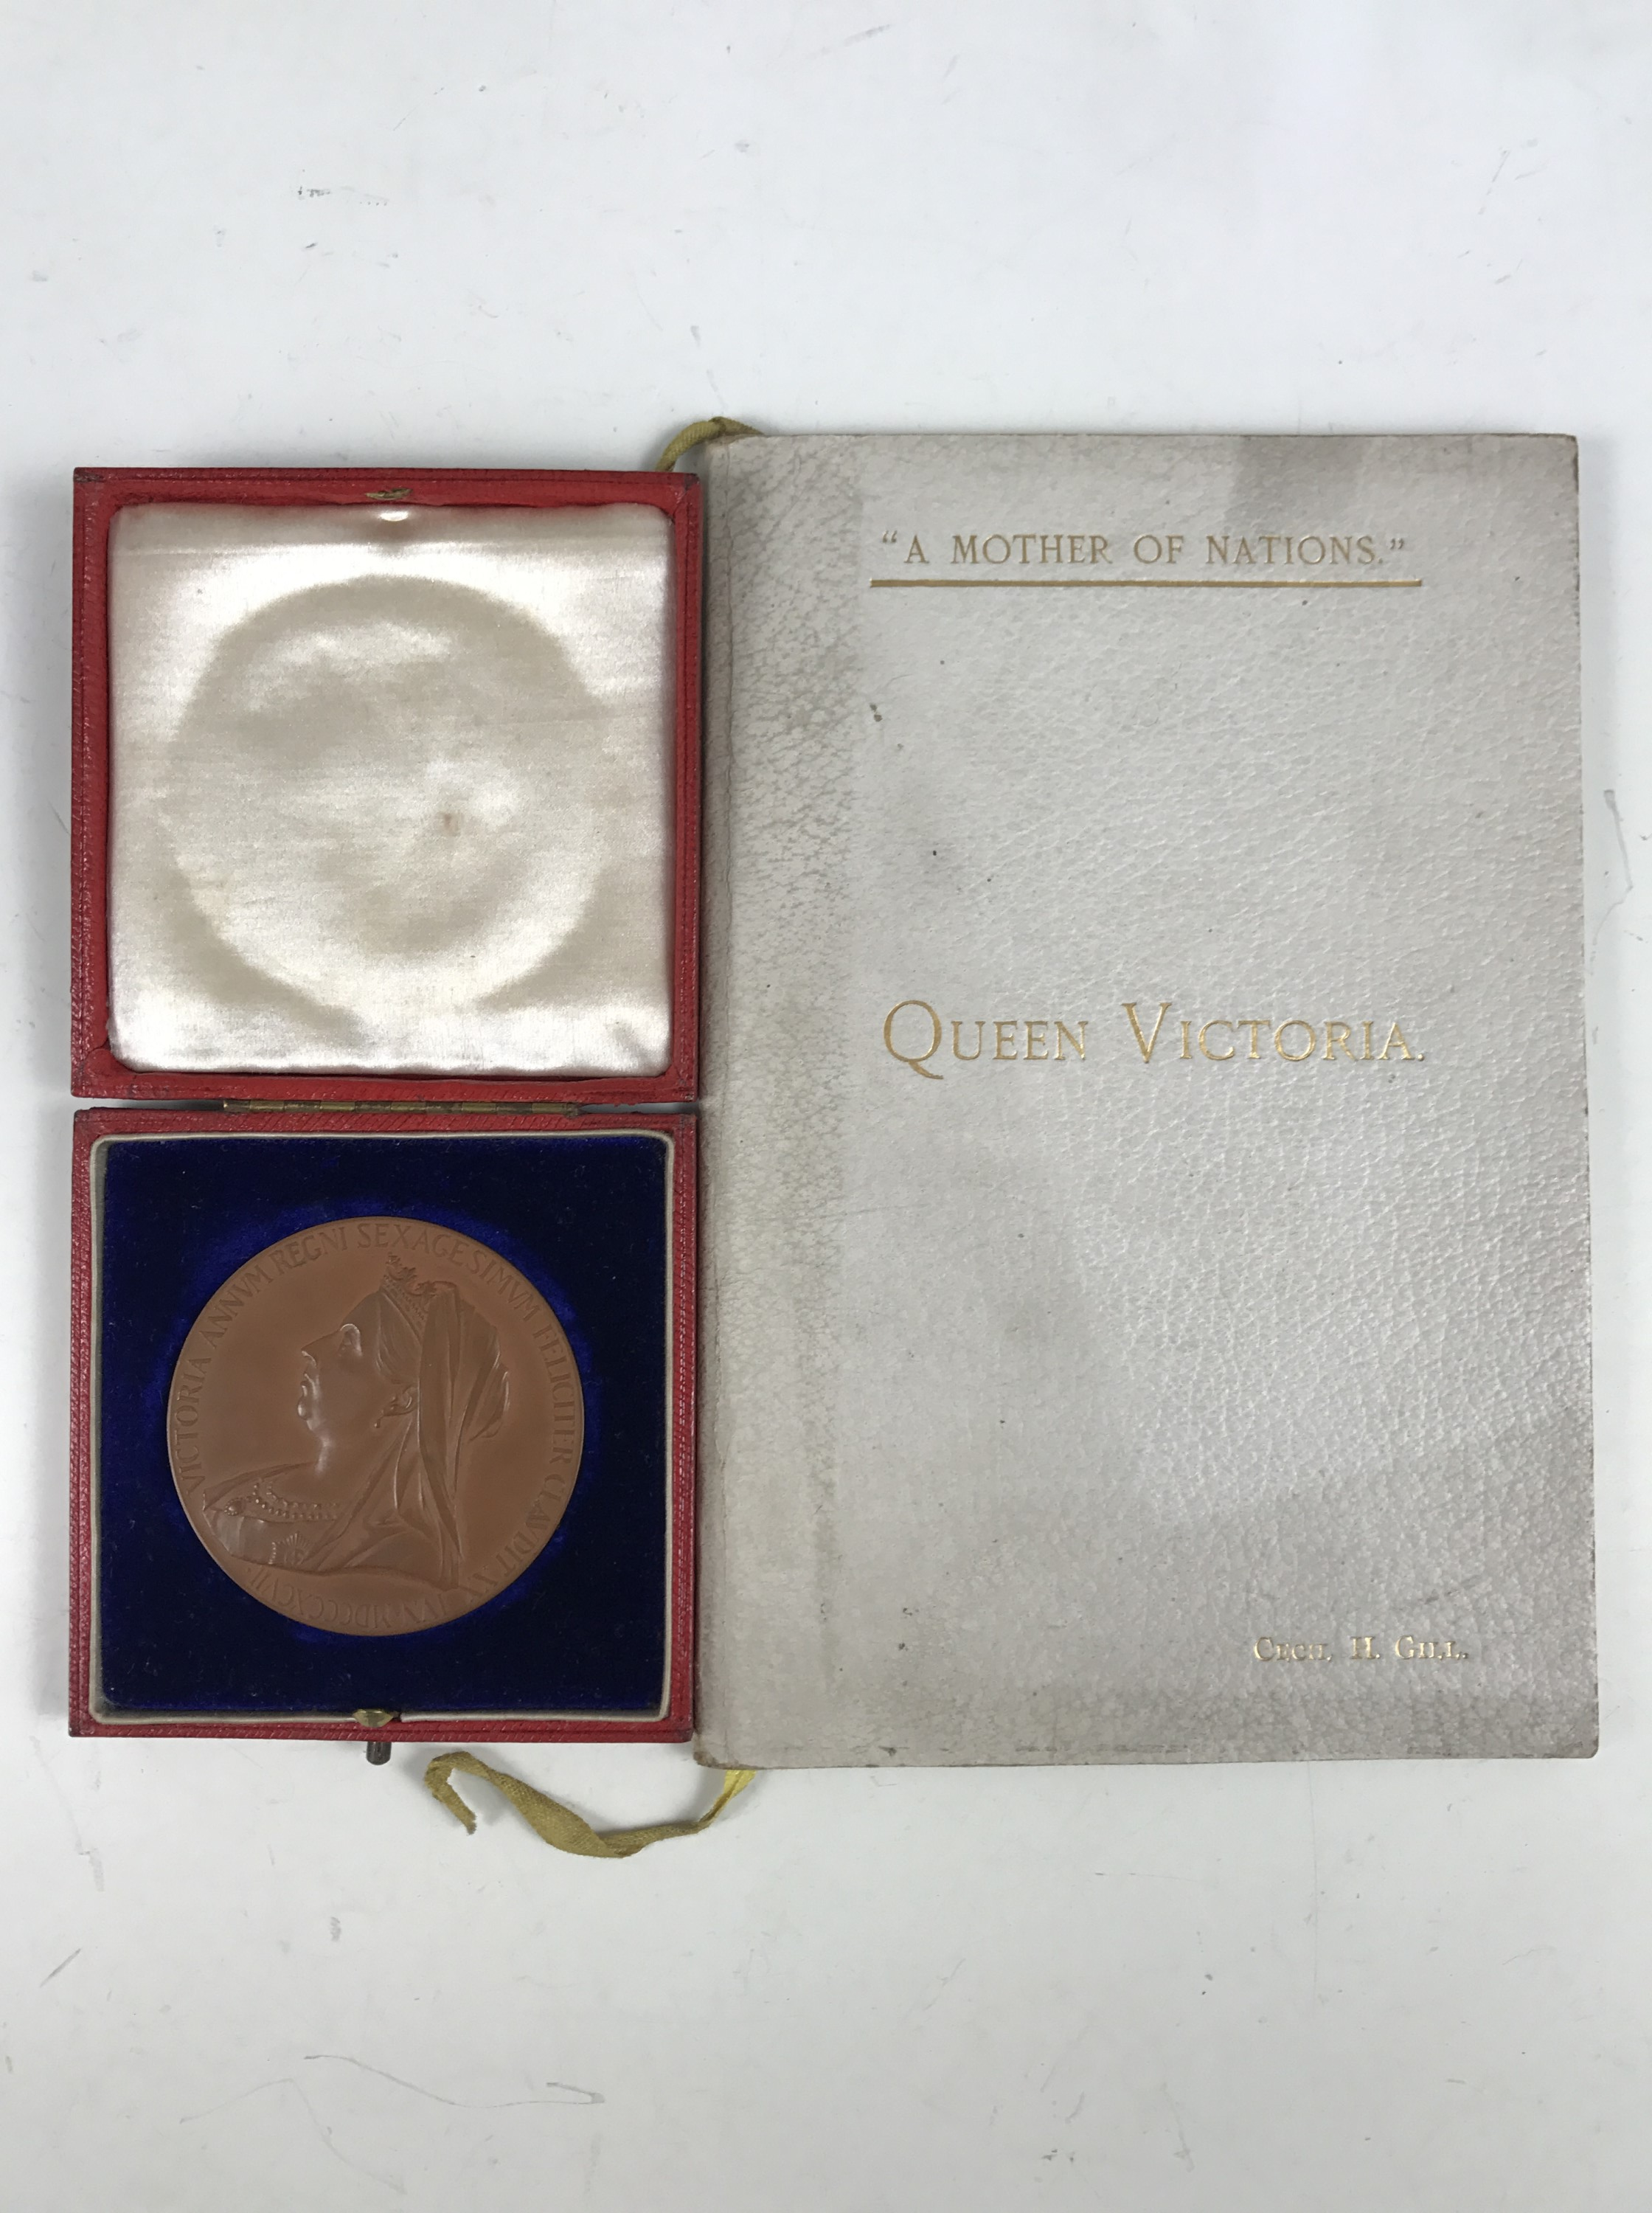 Lot 1 - A Queen Victoria diamond jubilee medallion together with a privately published 1901 Bucklebury Queen